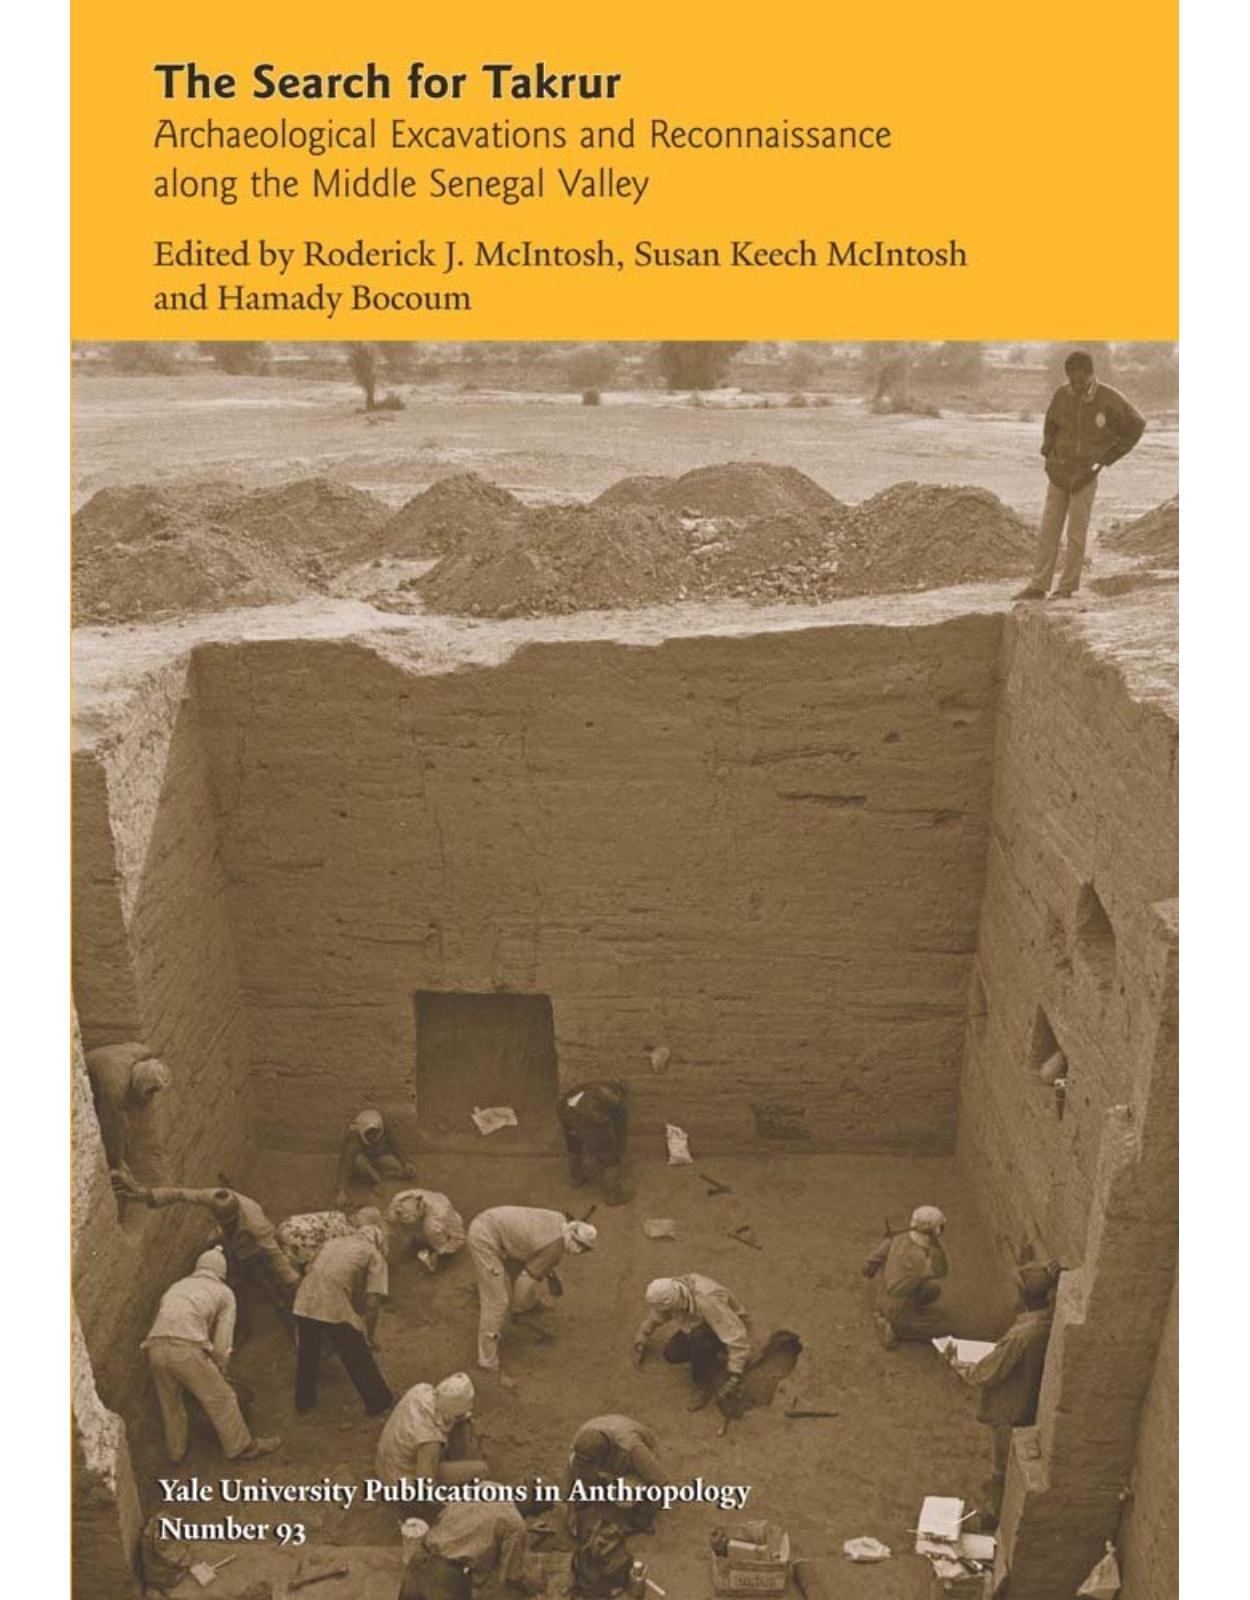 Search for Takrur. Archaeological Excavations and Reconnaissance along Middle Senegal Valley